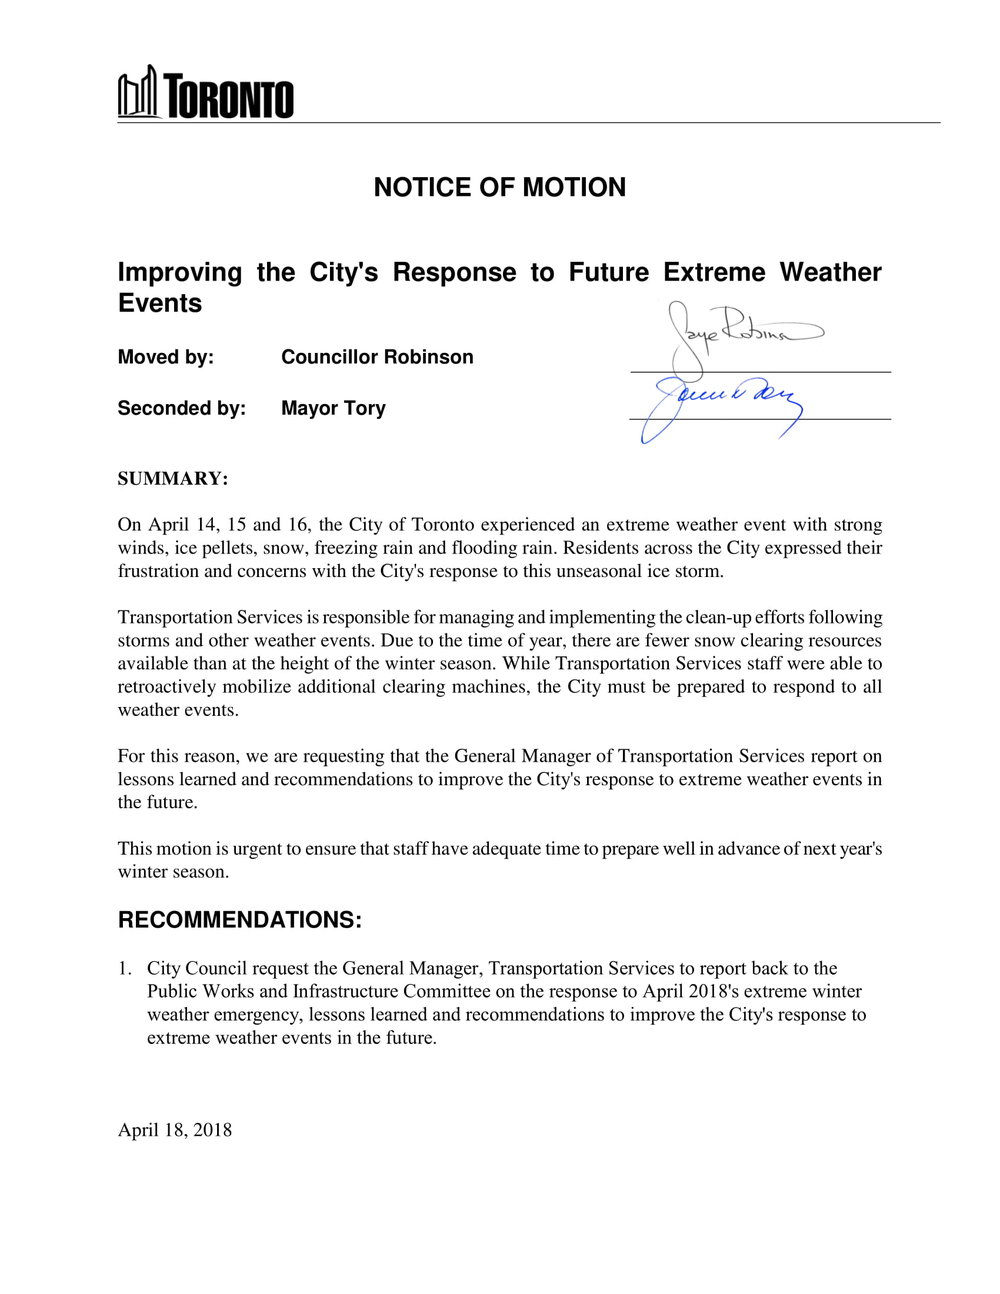 Notice of Motion - Response to Weather Event 2-1.jpg